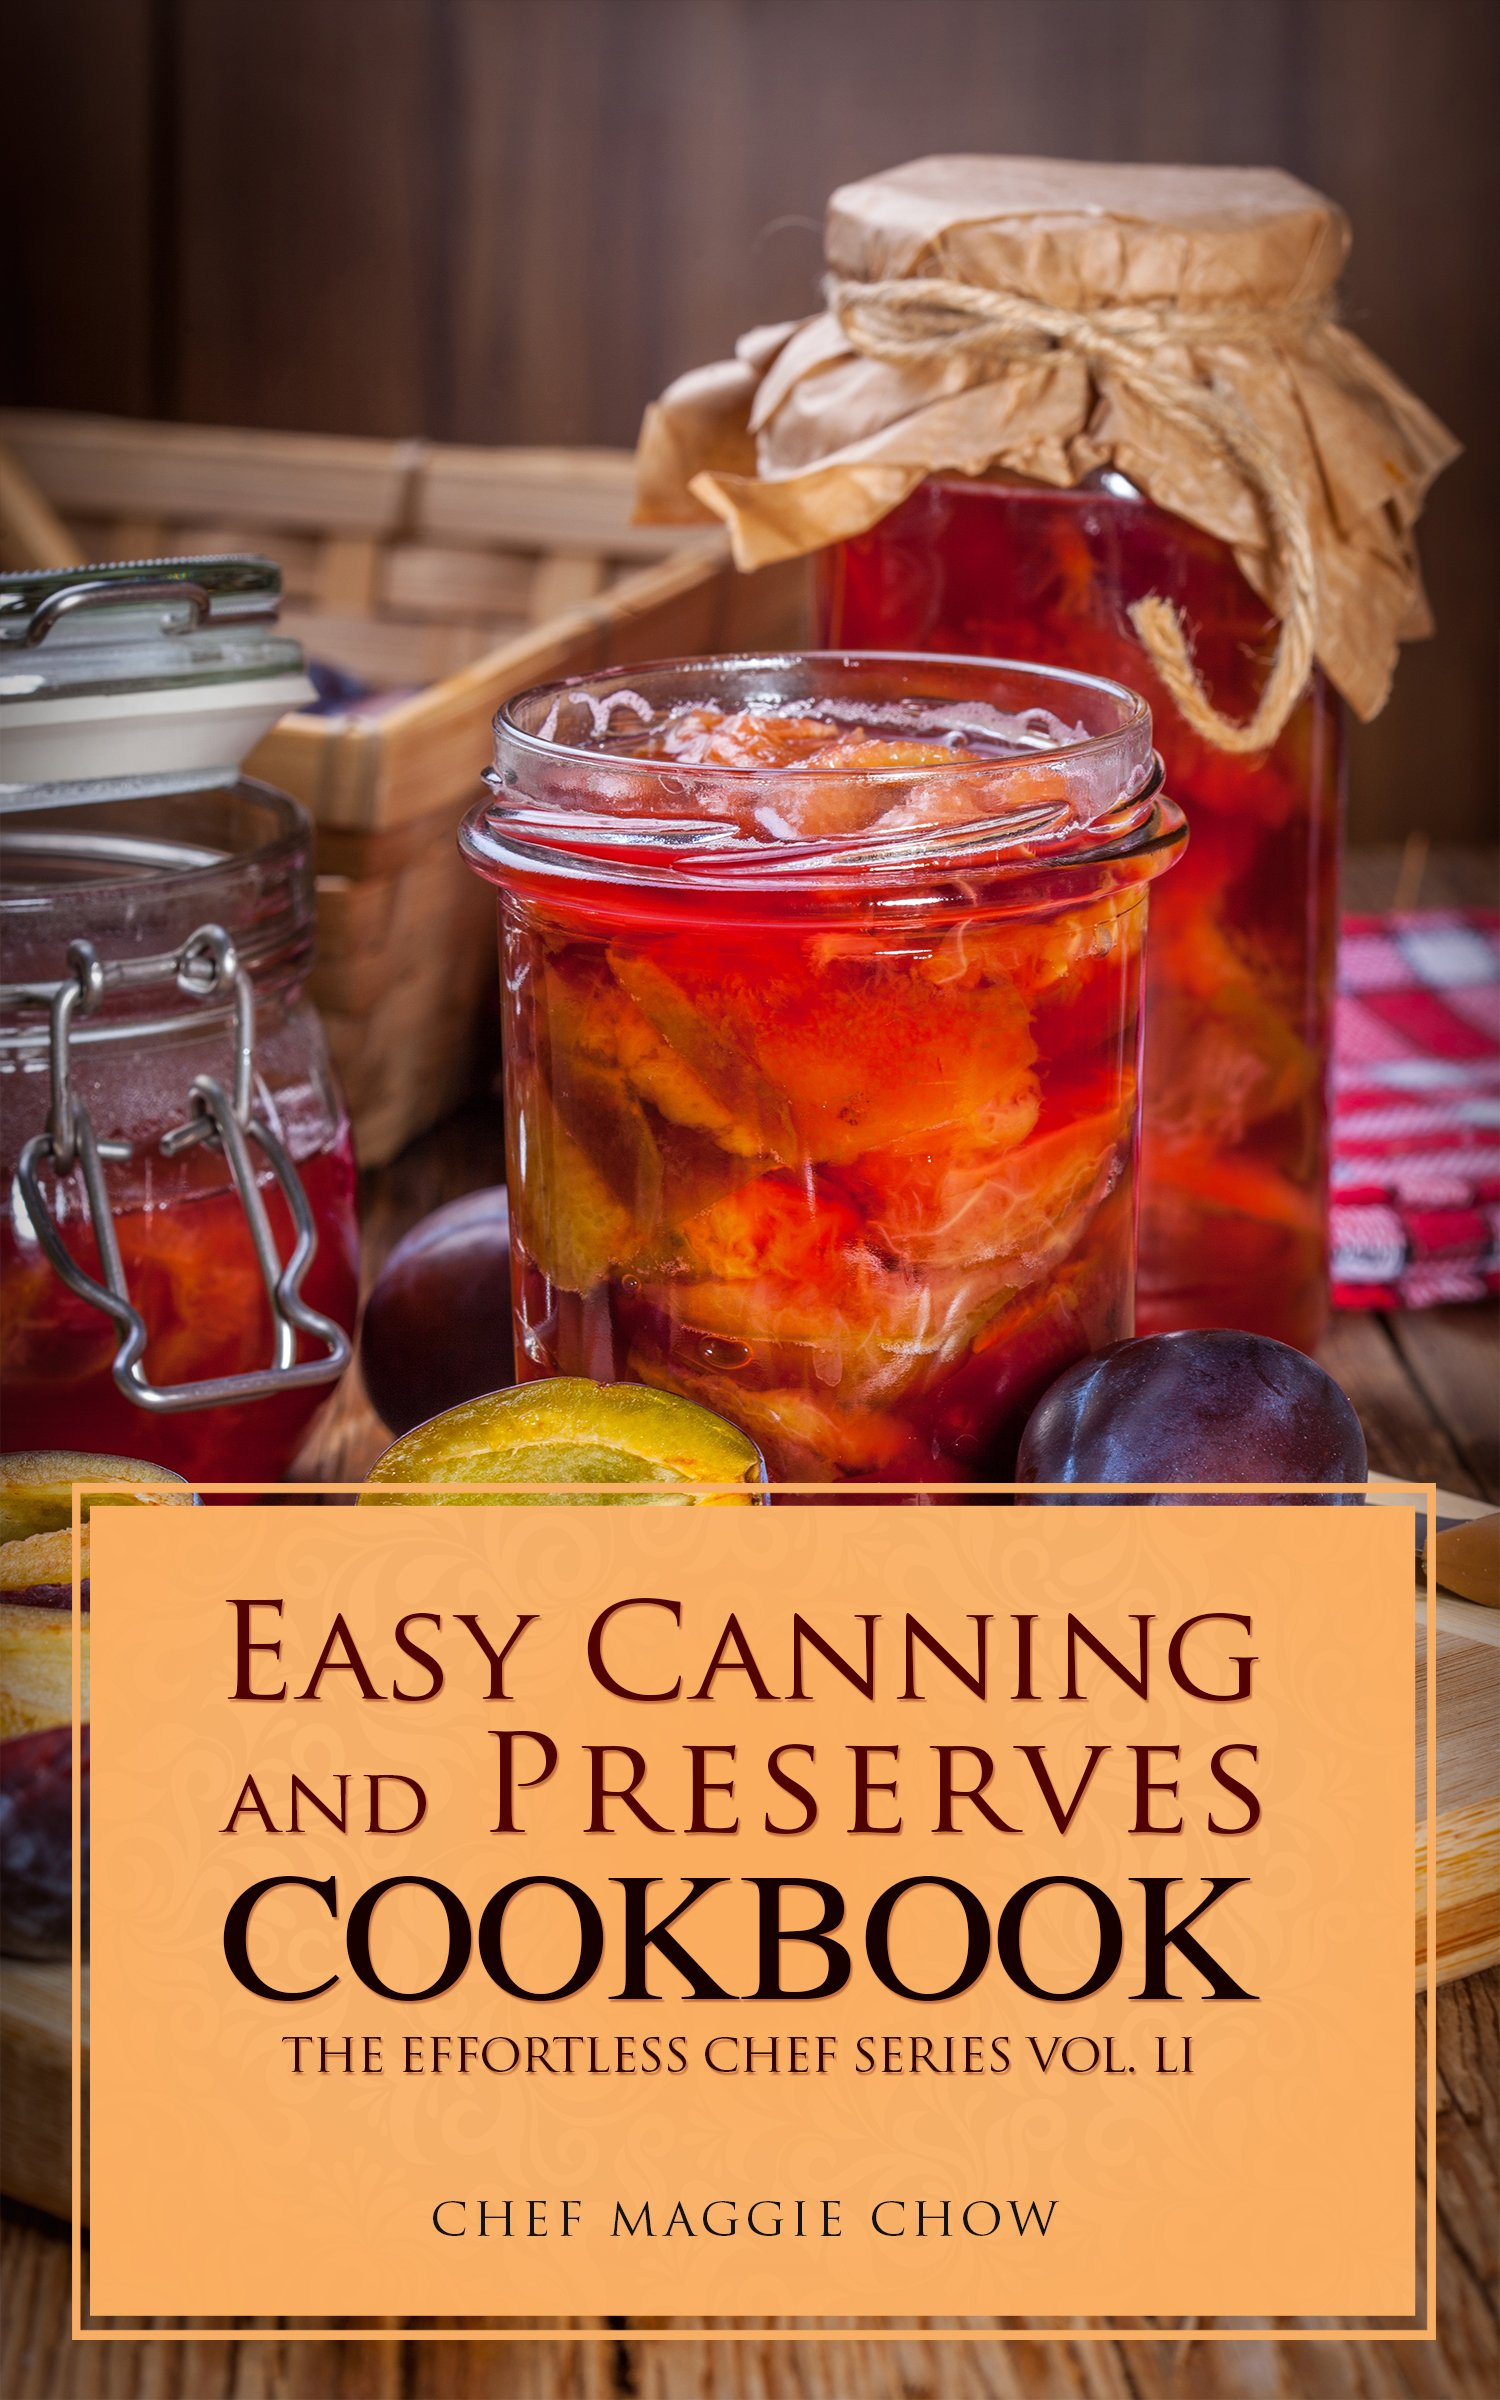 Image OfEasy Canning And Preserves Cookbook (Canning Cookbook, Canning Recipes, Preserves And Canning, Canning And Preserves, Cann...